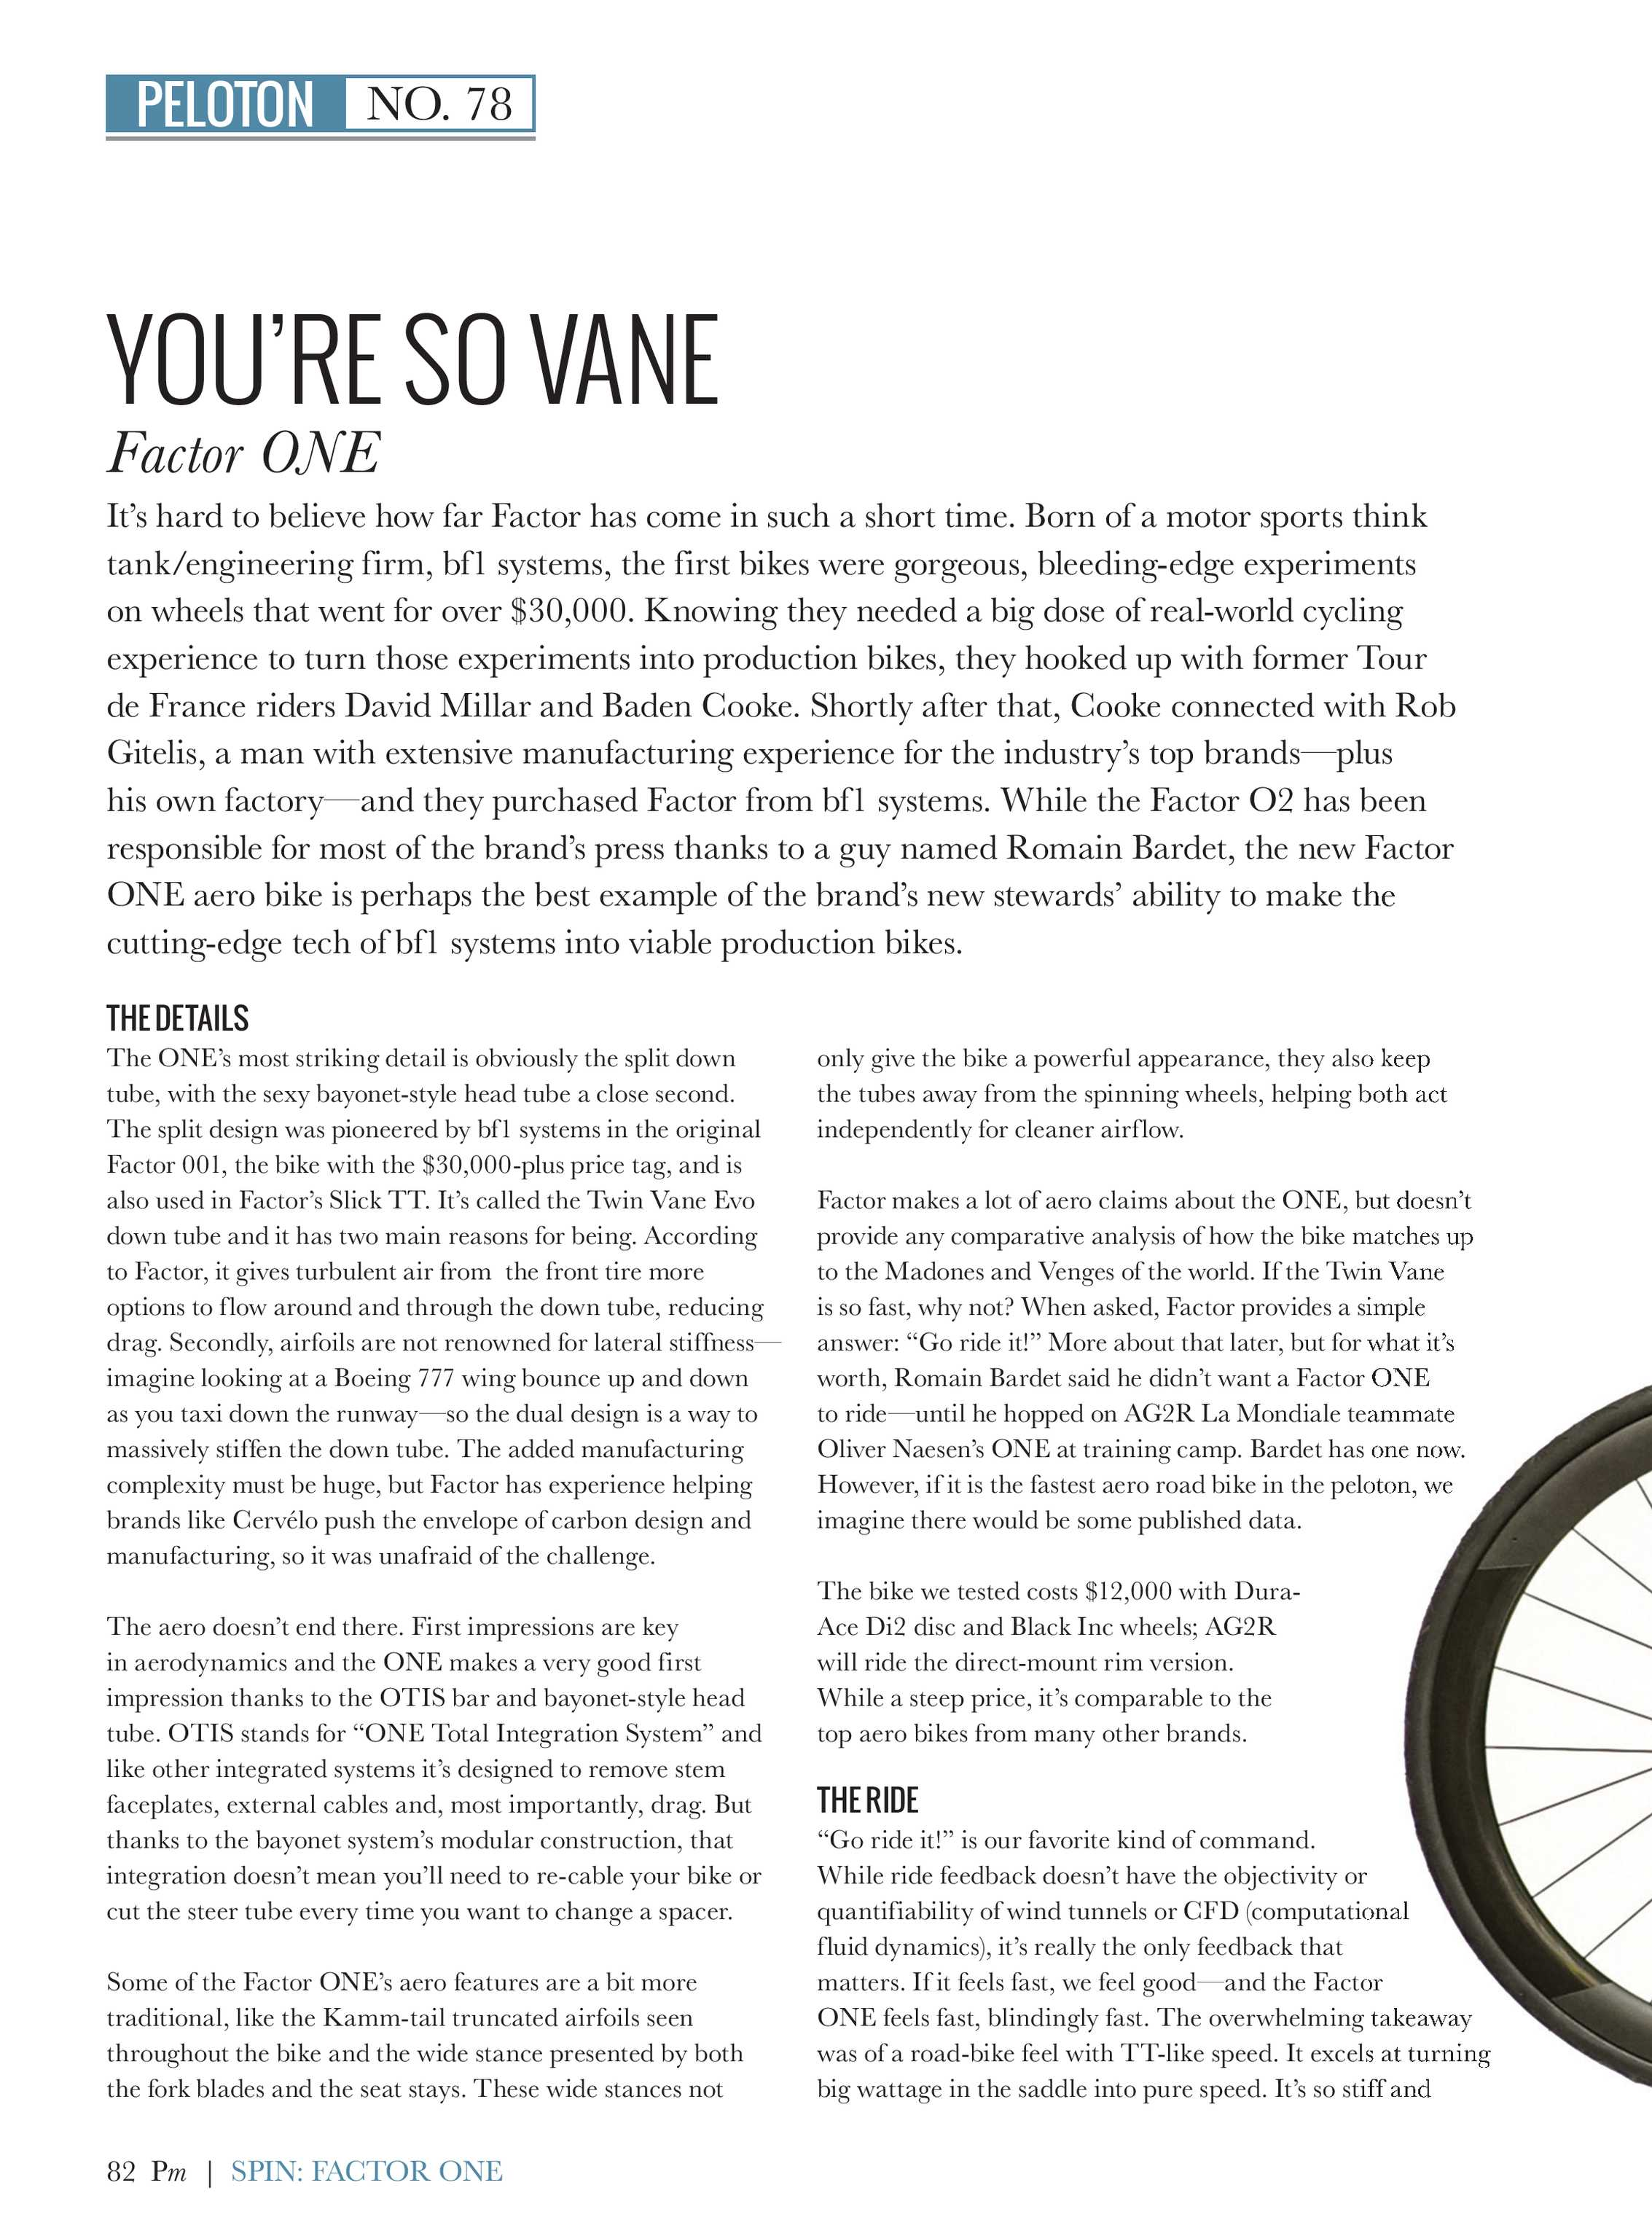 Not Too Many Wheels Spinning On These >> Peloton July 78 2018 Page 82